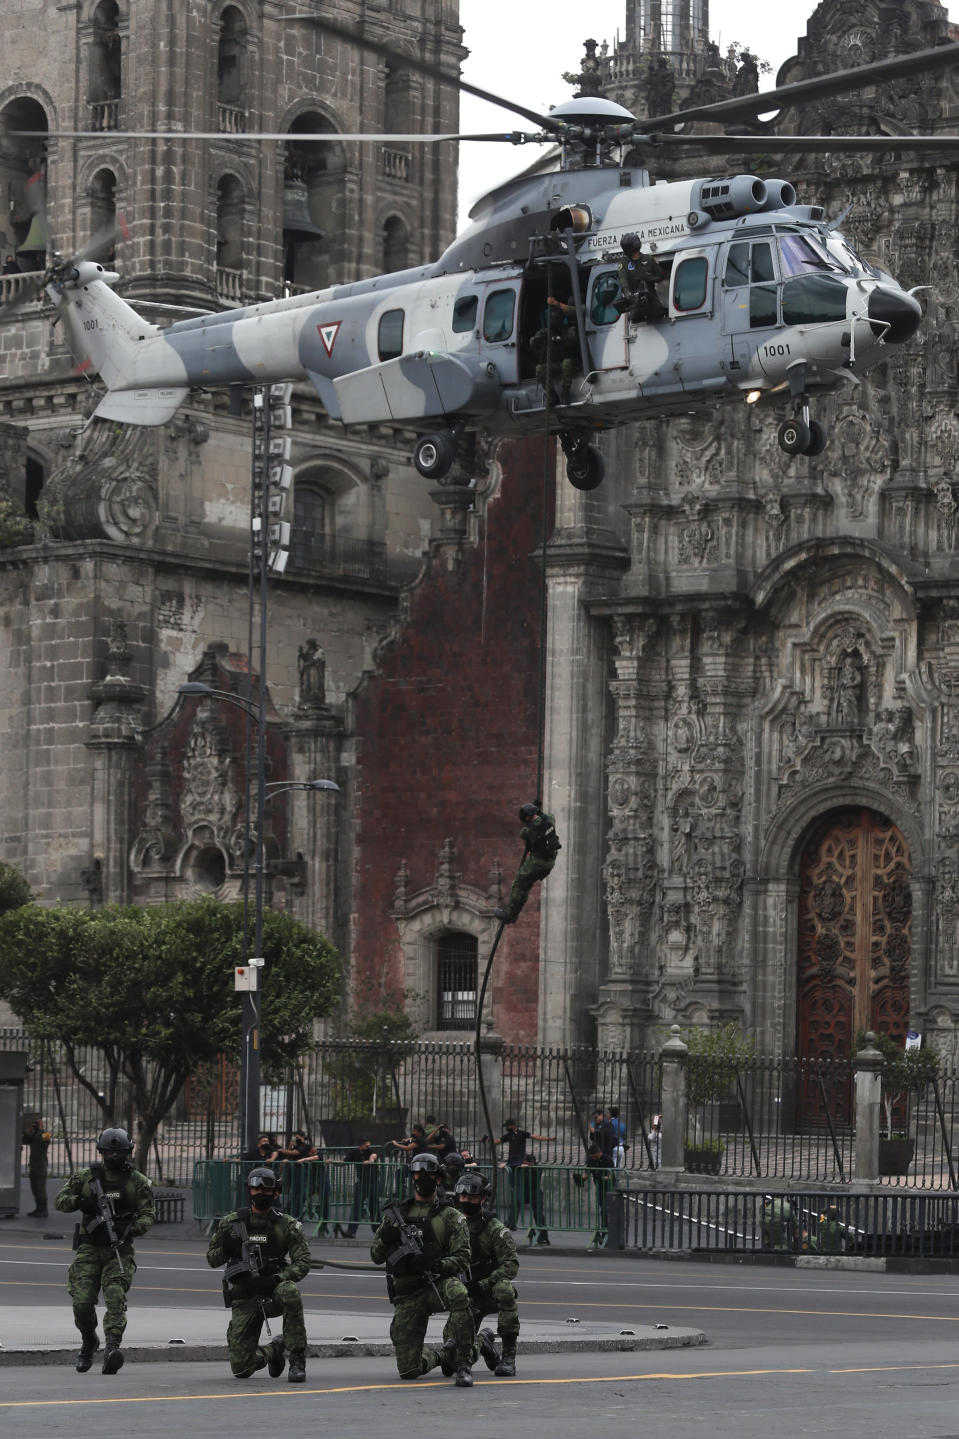 A paratrooper repels from a helicopter hovering over Mexico City's main square, known as the Zocalo, during the annual Independence Day military parade, Wednesday, Sept. 16, 2020. Mexicans celebrated their Independence Day without big public ceremonies for the first time in 153 years Tuesday night due to restrictions on public gatherings caused by the coronavirus pandemic. (AP Photo/Marco Ugarte)